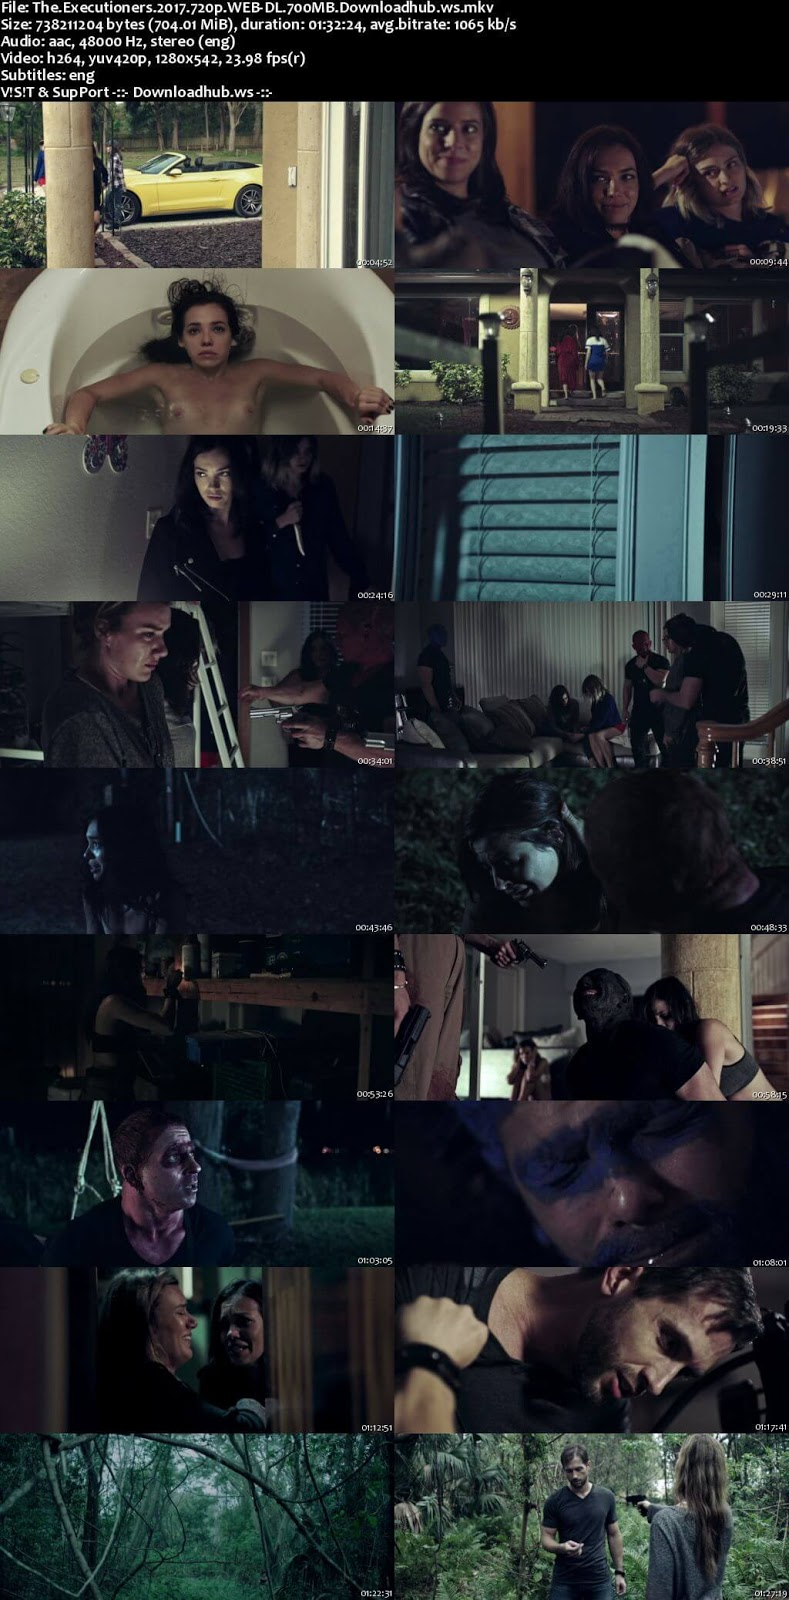 The Executioners 2017 English 720p Web-DL 700MB